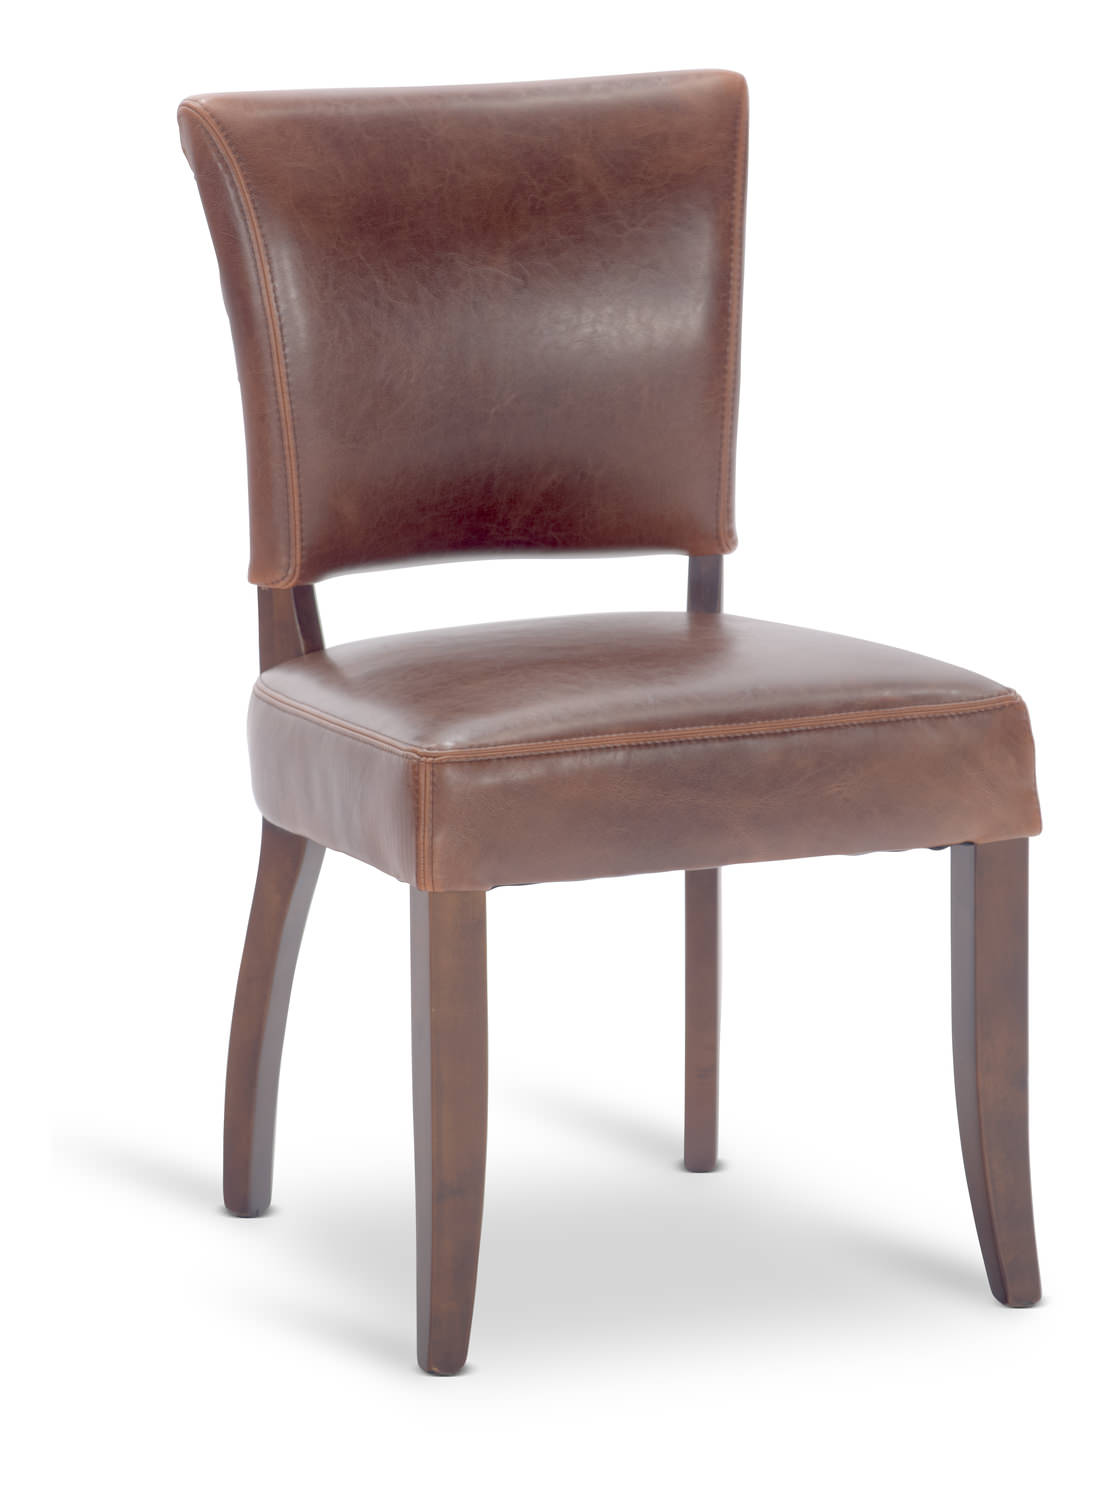 Flair Leather Dining Chair By Thomas Cole Designs Hom Furniture